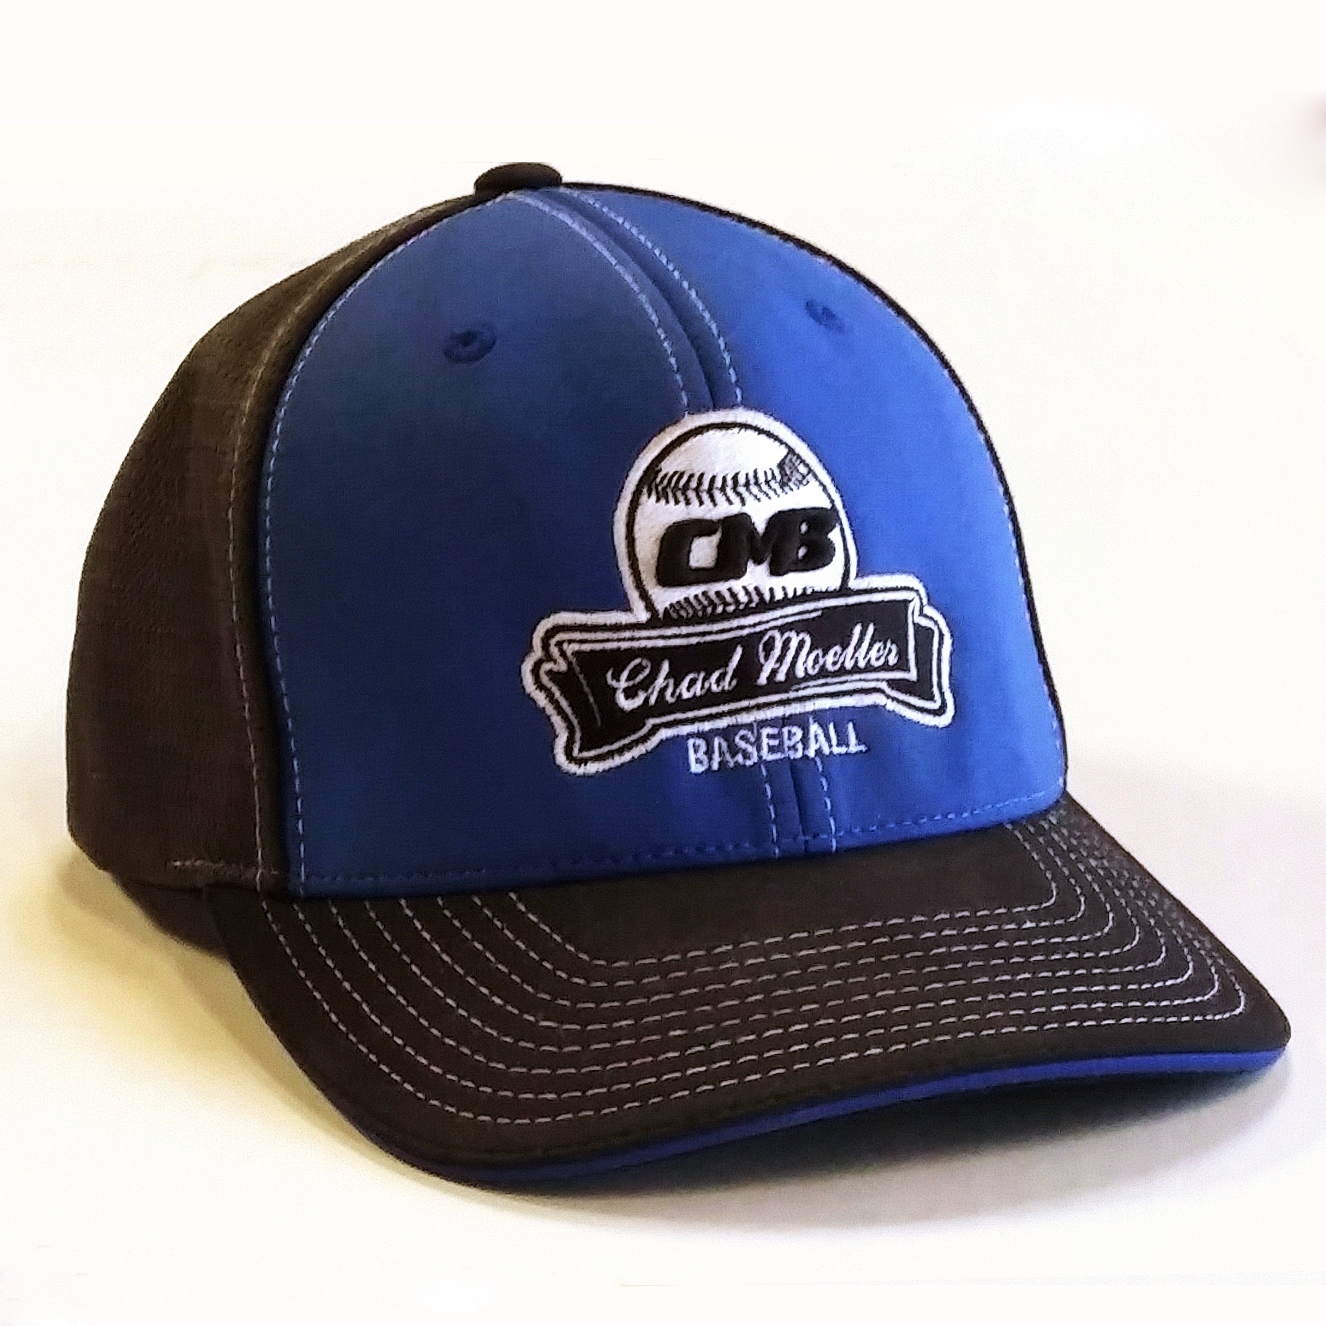 CMB Logo Hat, Blue and Dark Gray